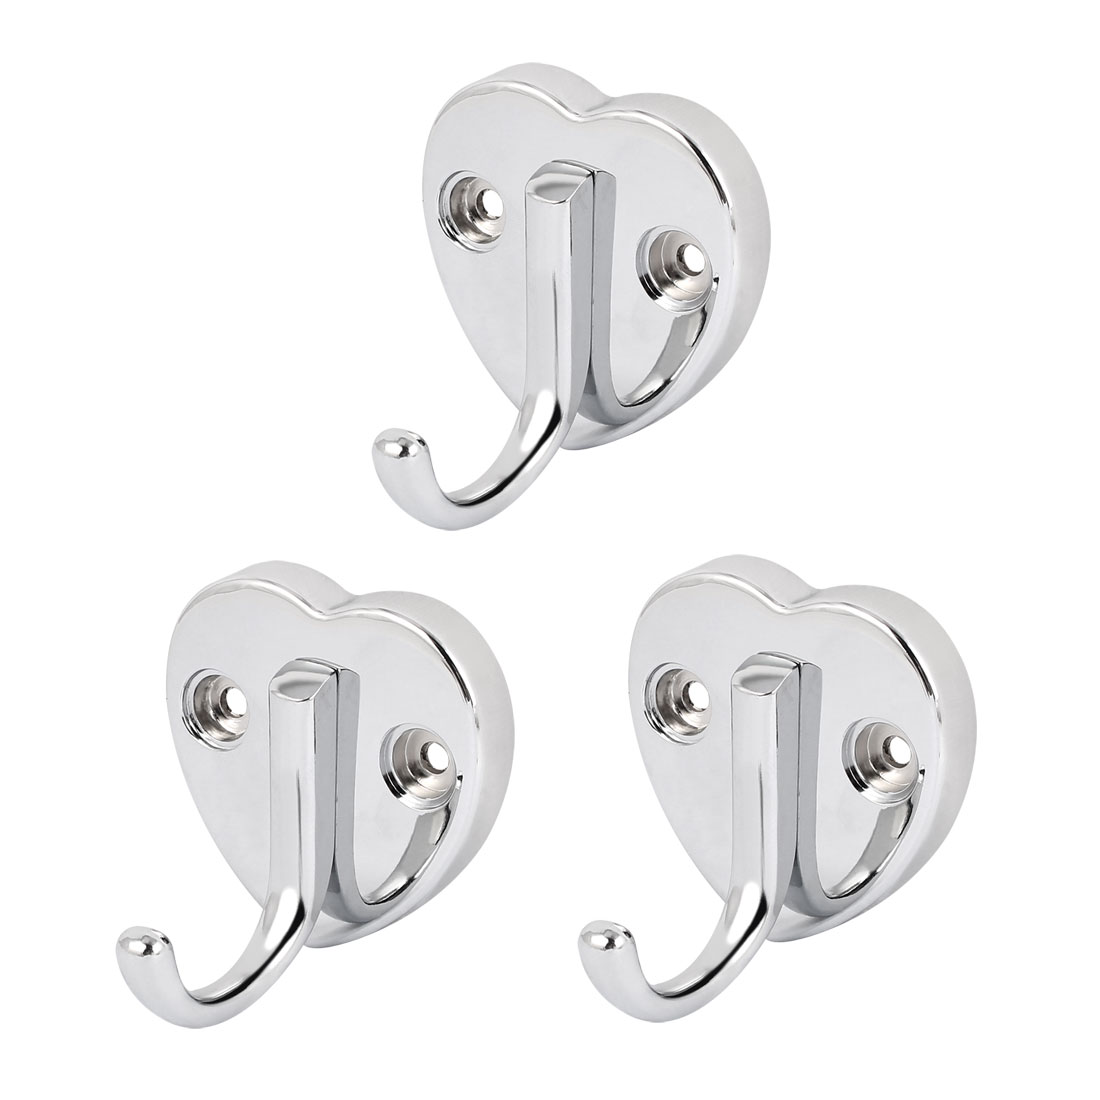 65mm x 60mm Heart Shape Base Wall Mounted Coat Hat Single Hook Hanger 3pcs